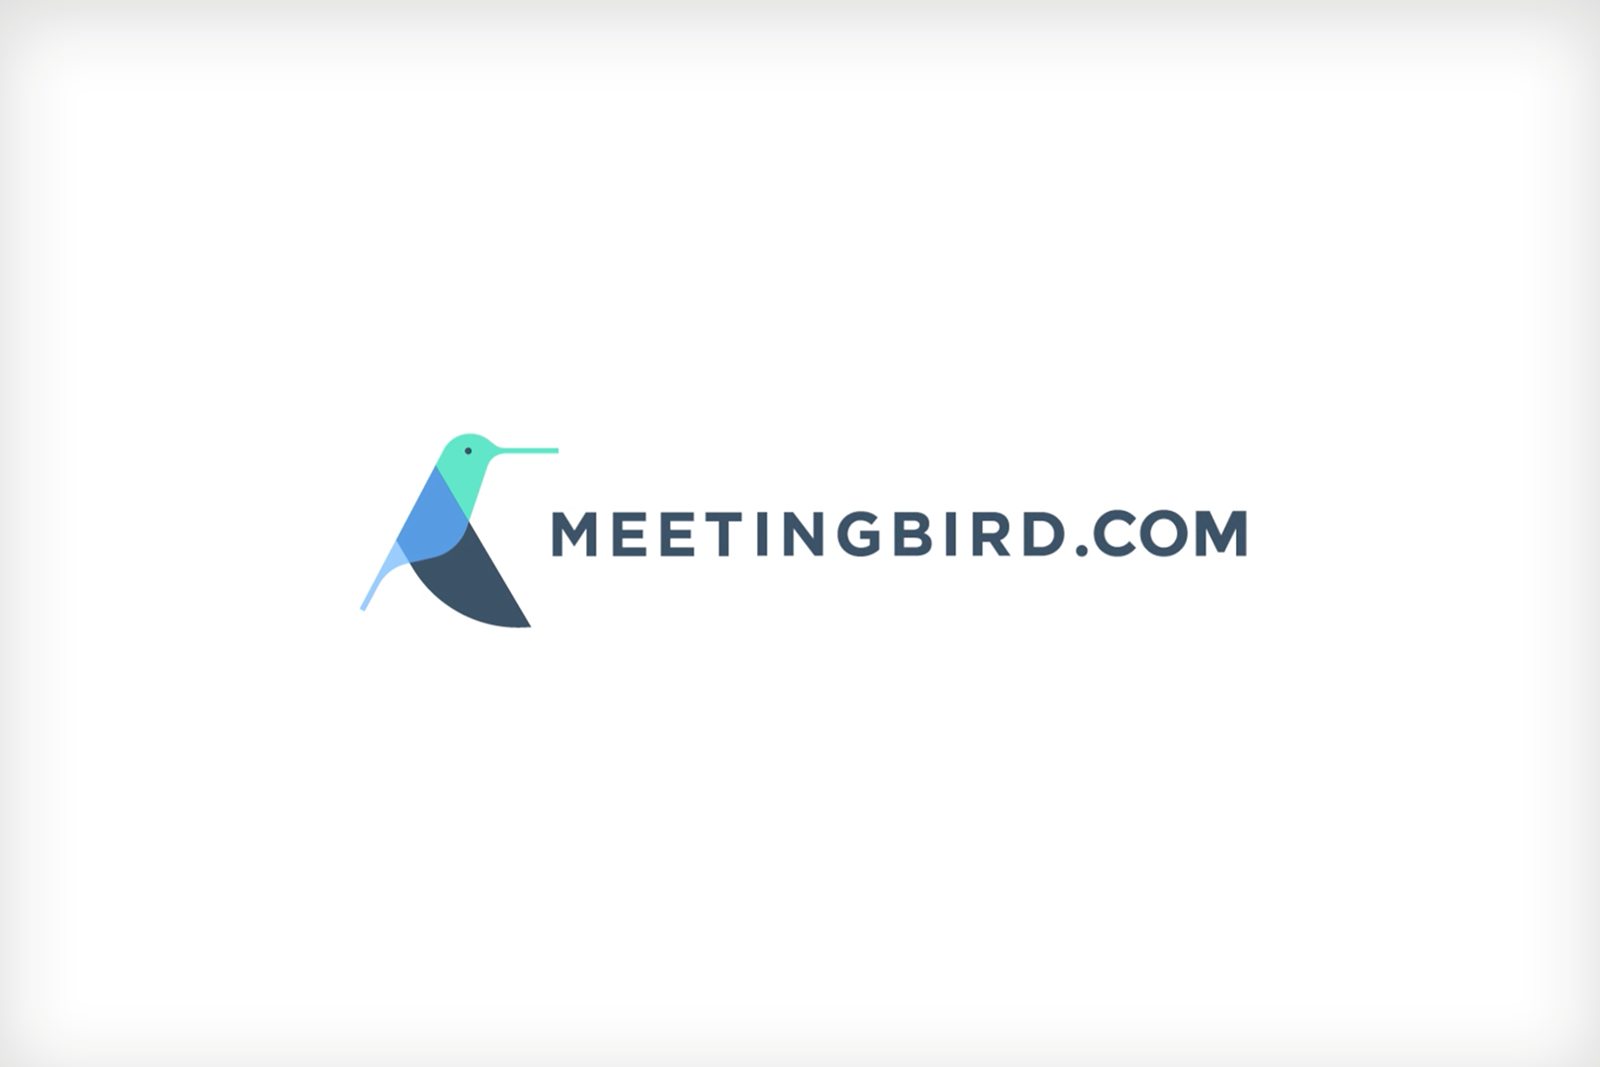 Meetingbird